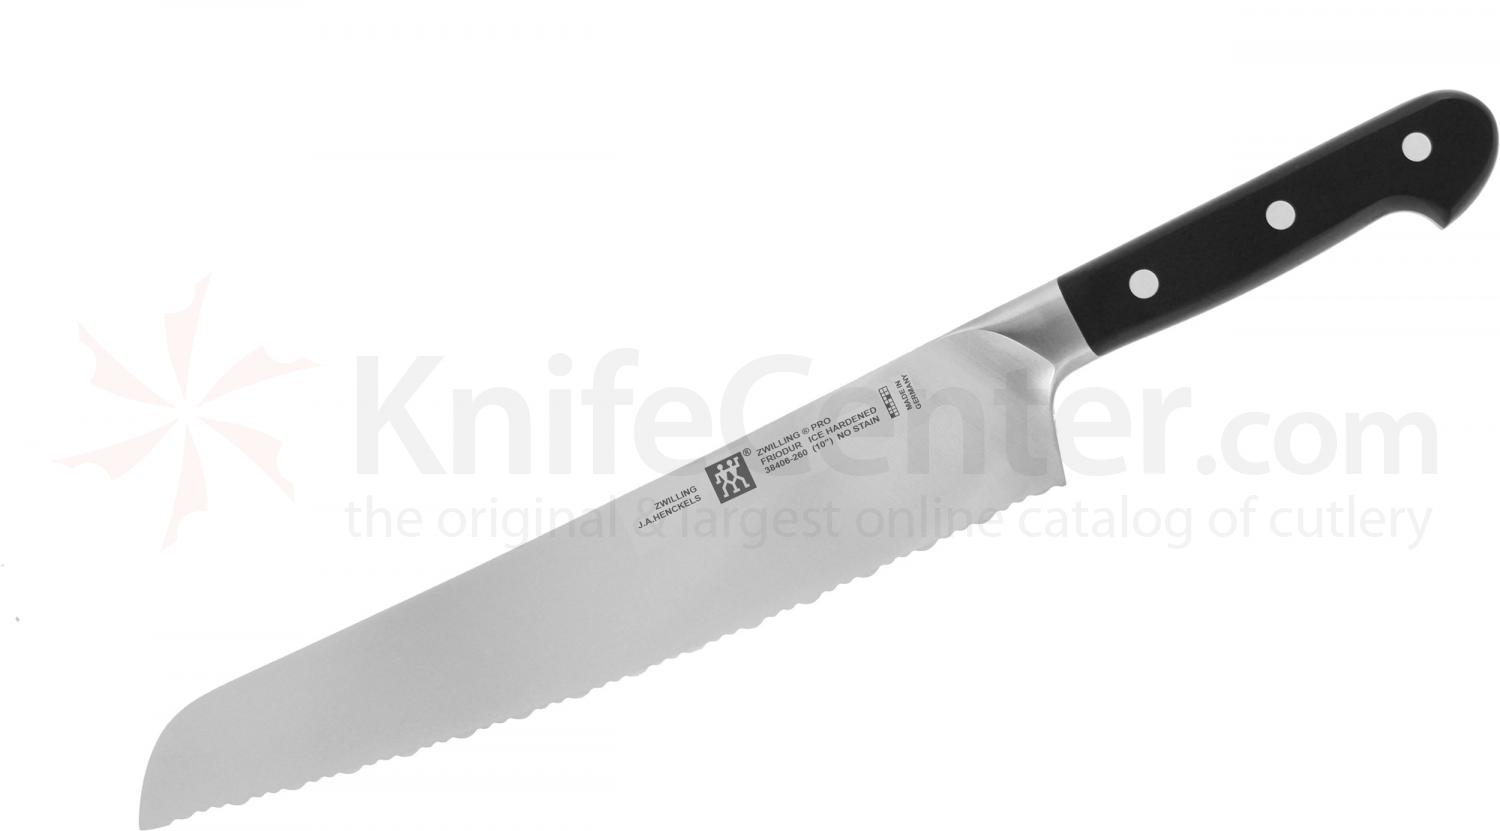 Zwilling J.A. Henckels Pro 10 inch Ultimate Bread Knife